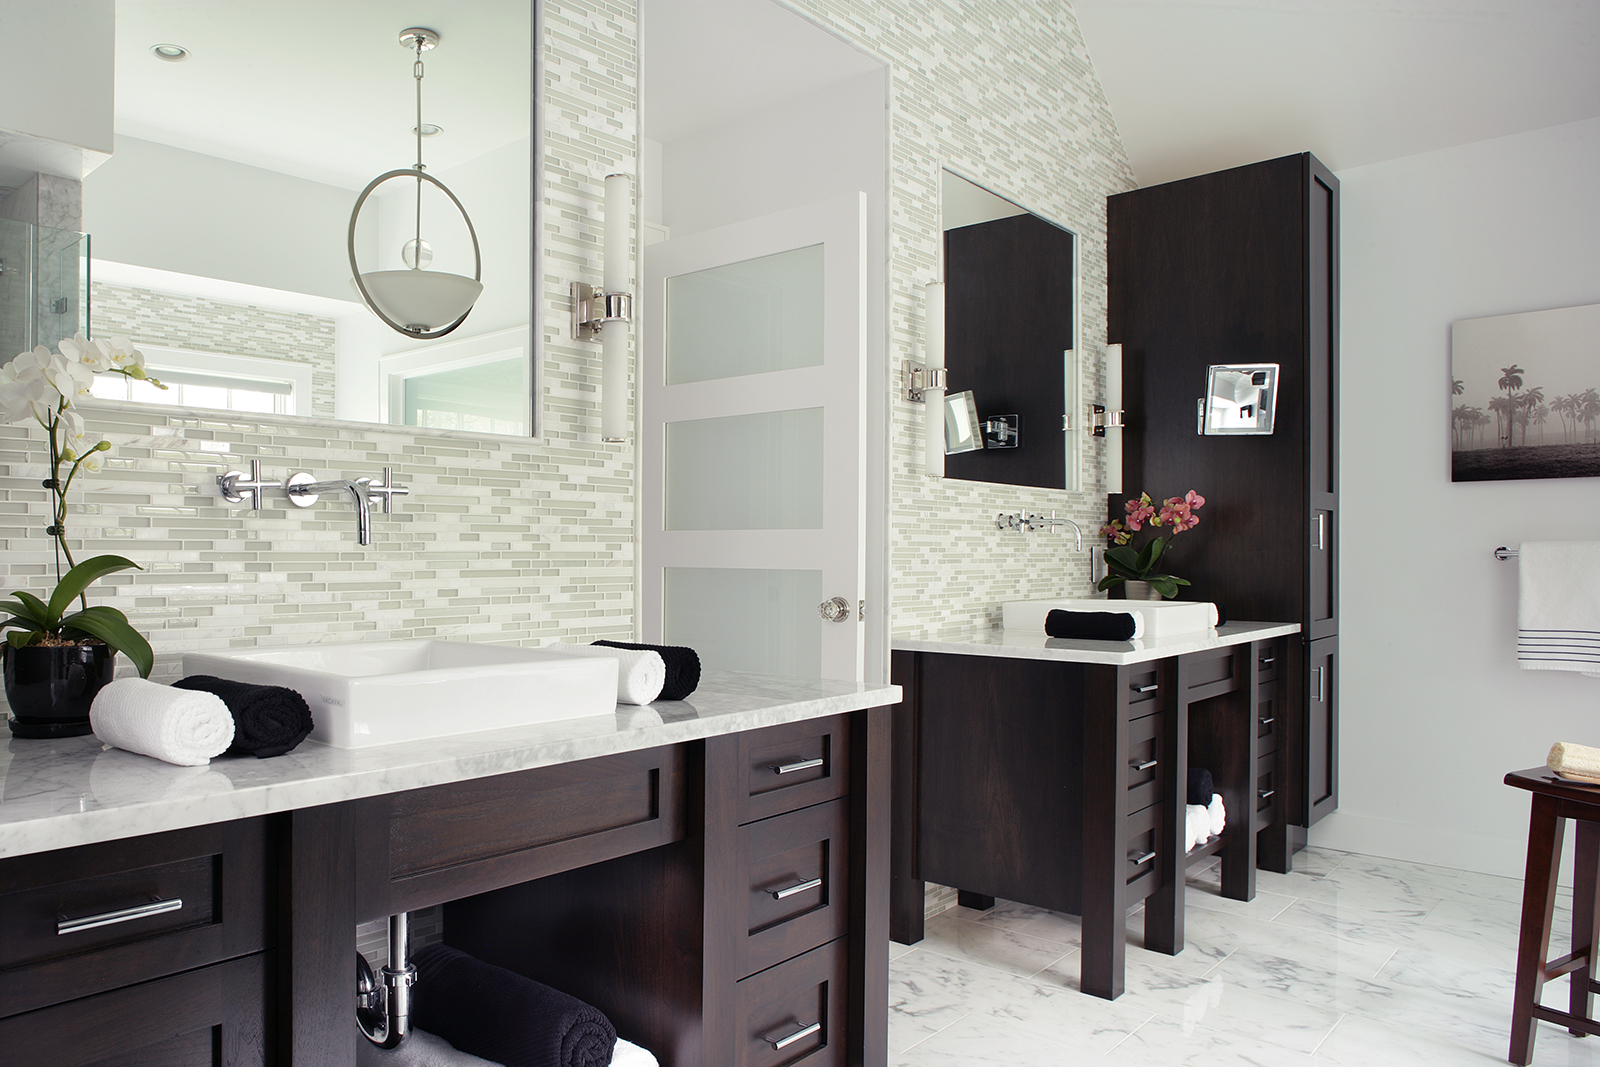 Peter salerno inc transitional bathroom wins 2015 for Bathroom designs 2016 uk